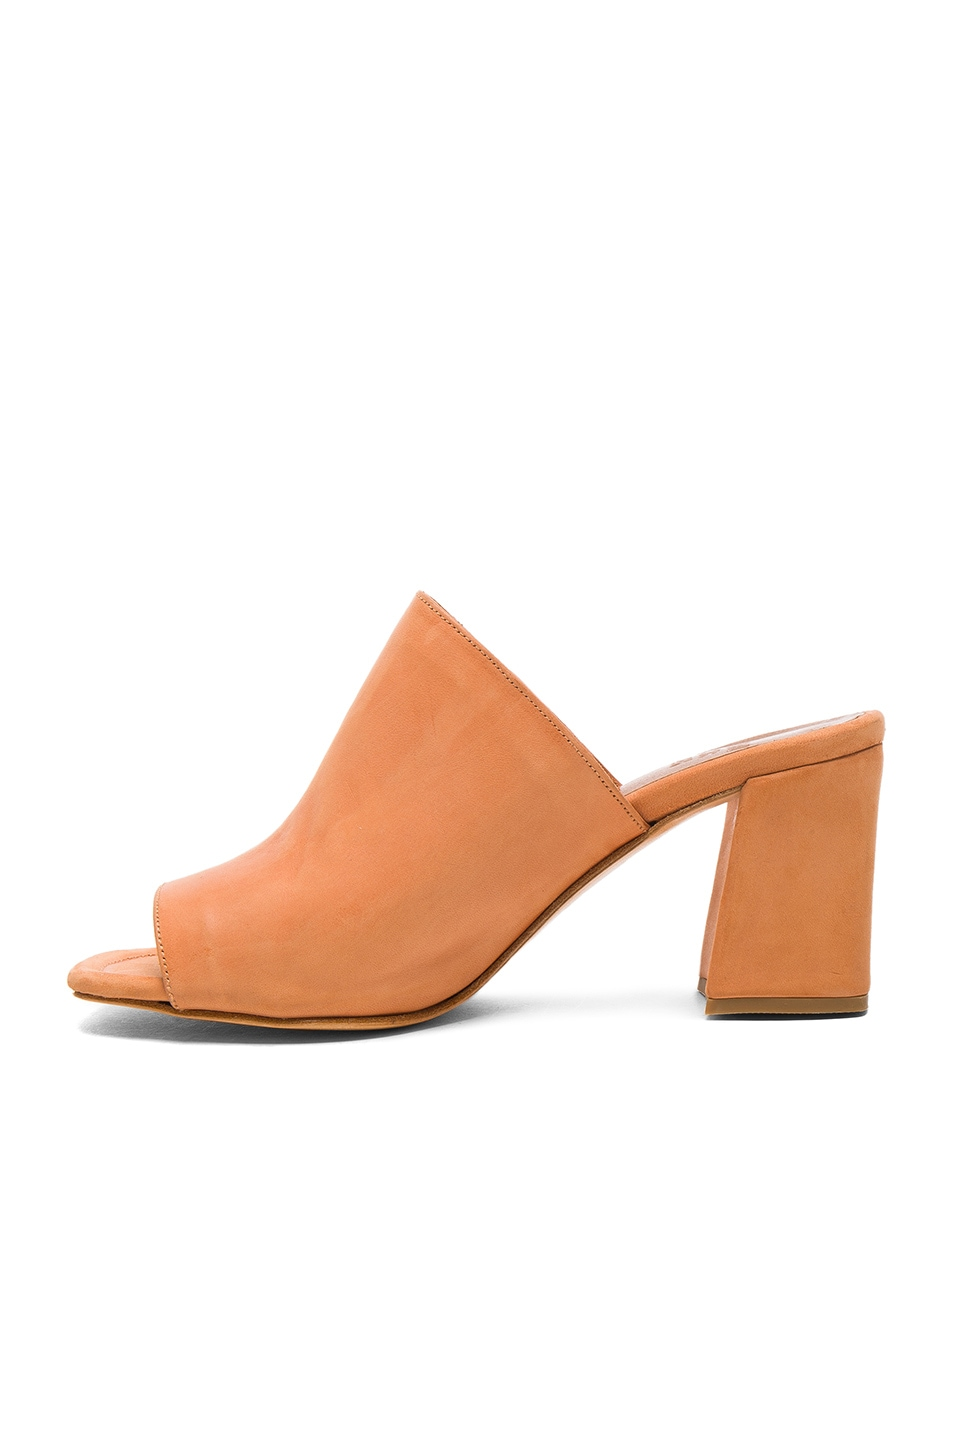 Image 5 of Maryam Nassir Zadeh Leather Penelope Mules in Natural Calf